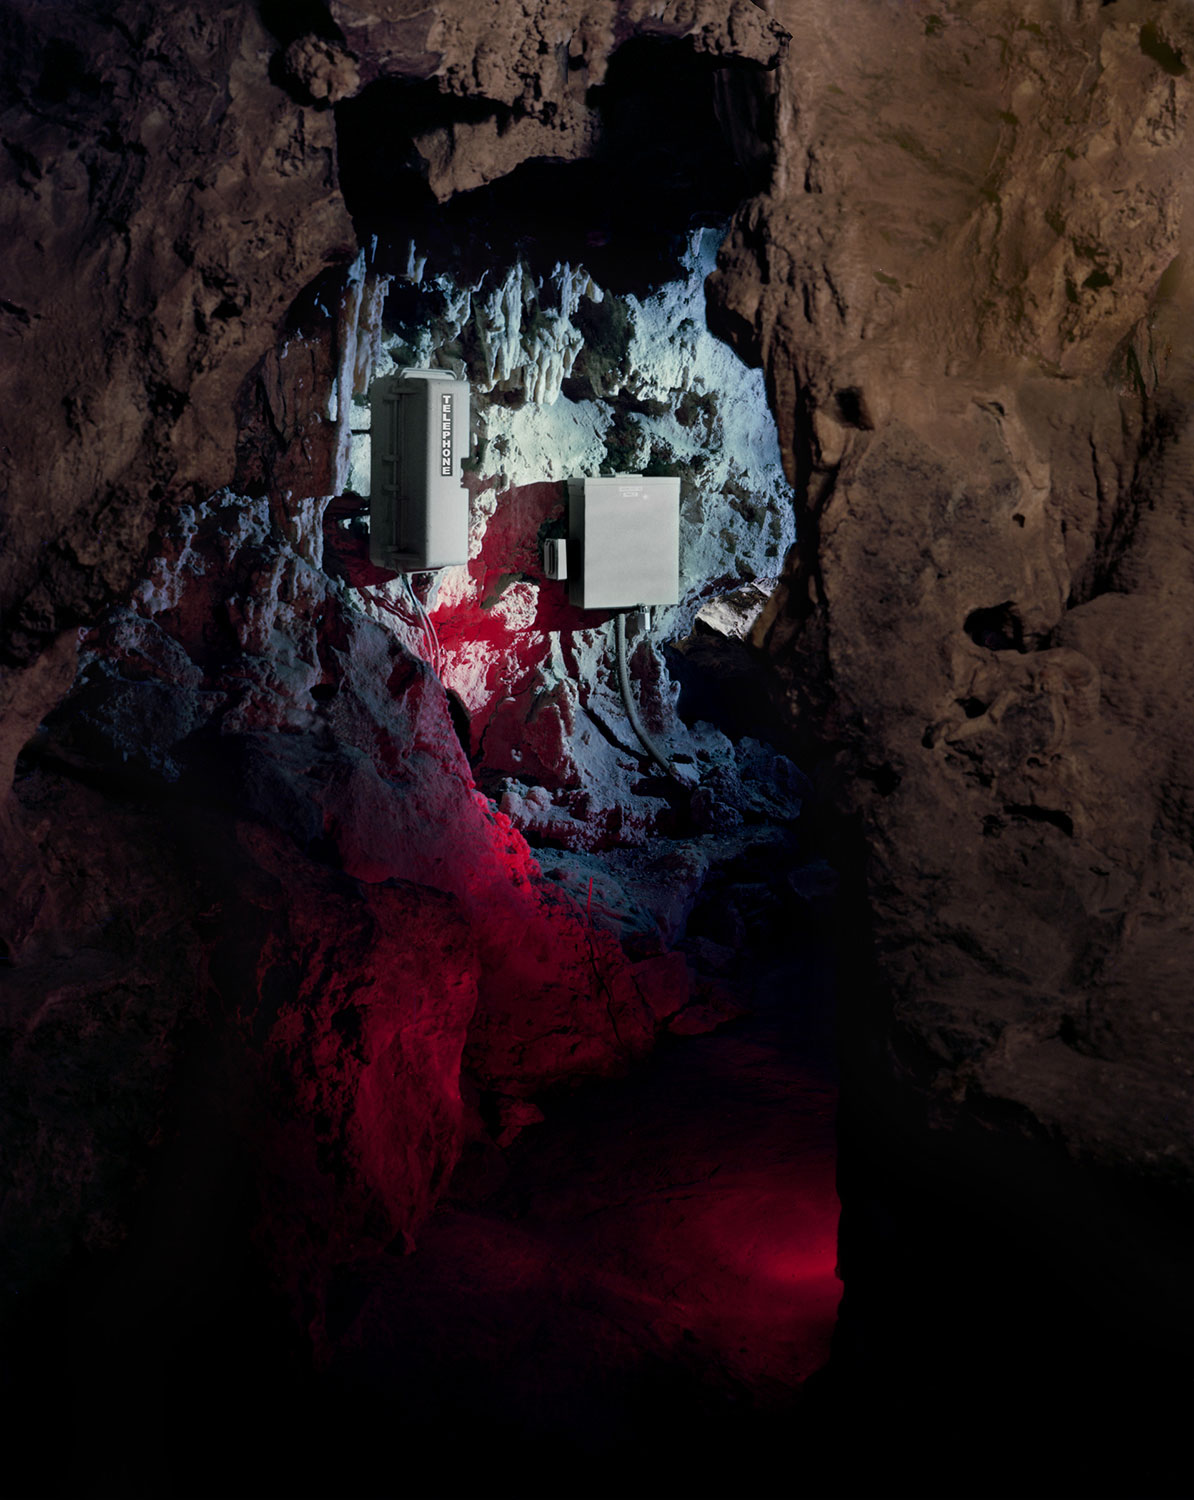 Austin Irving, Colossal Cave Emergency Phone, Arizona, 2013.